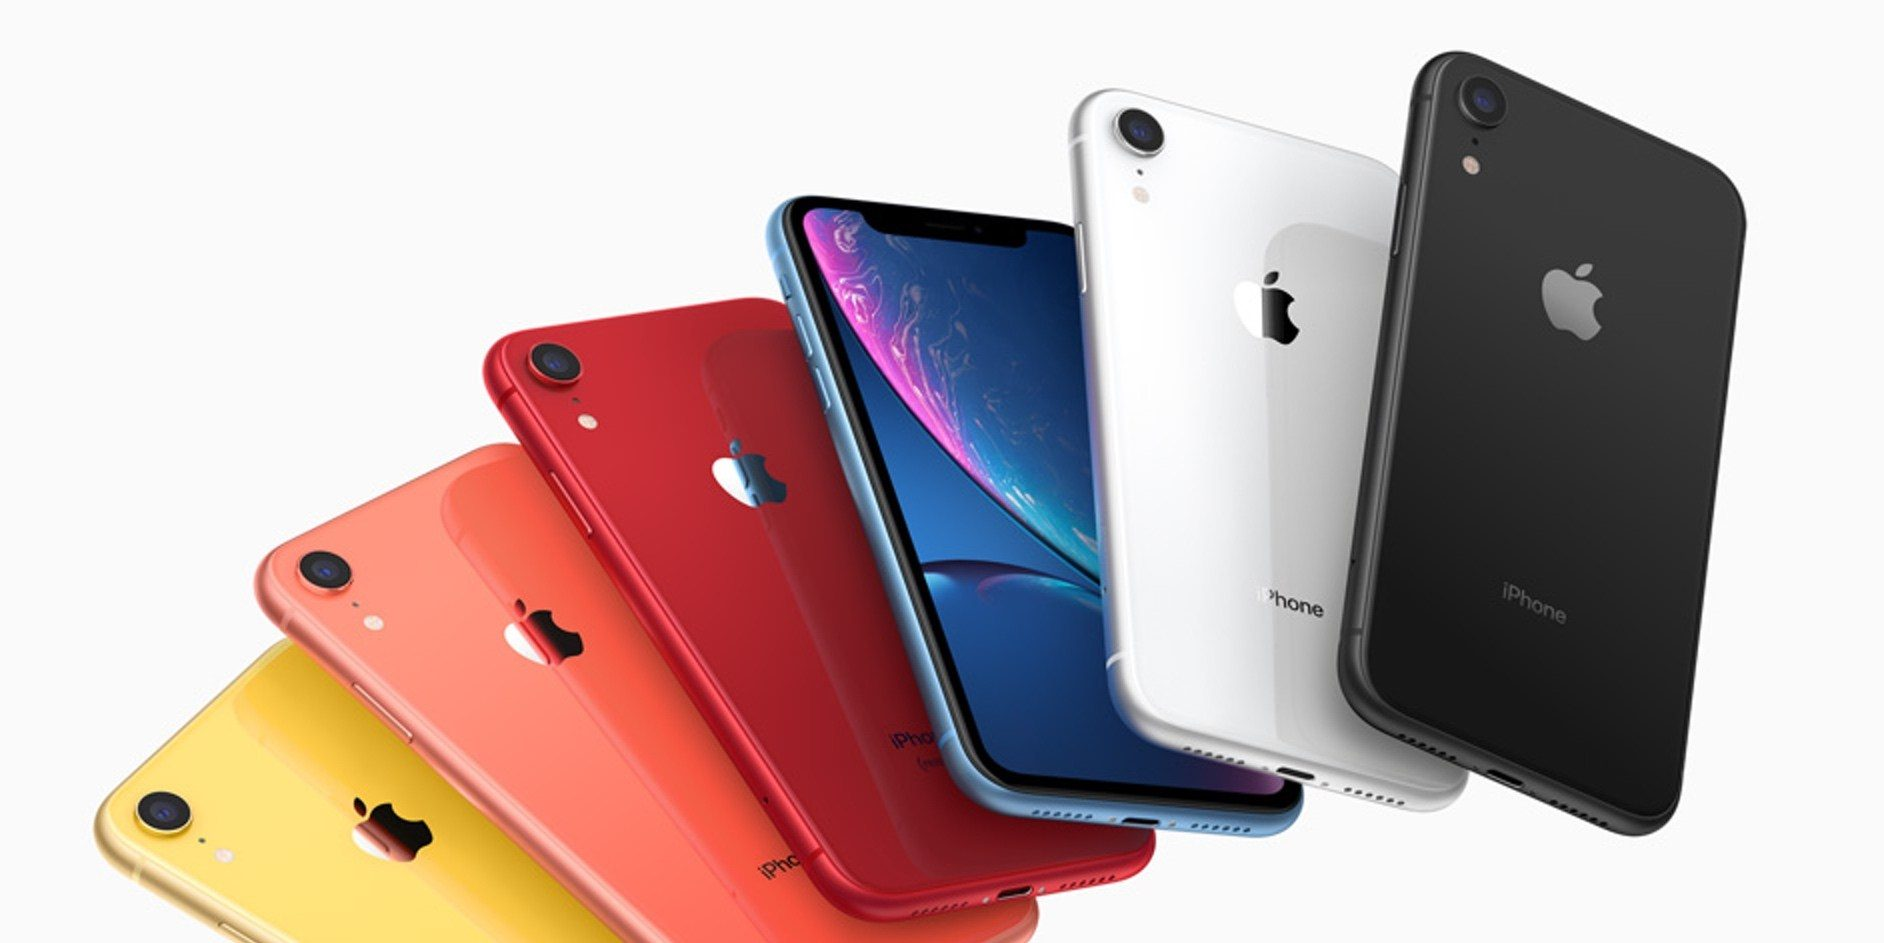 iPhone XR to be available in two new colors, replacing coral and blue